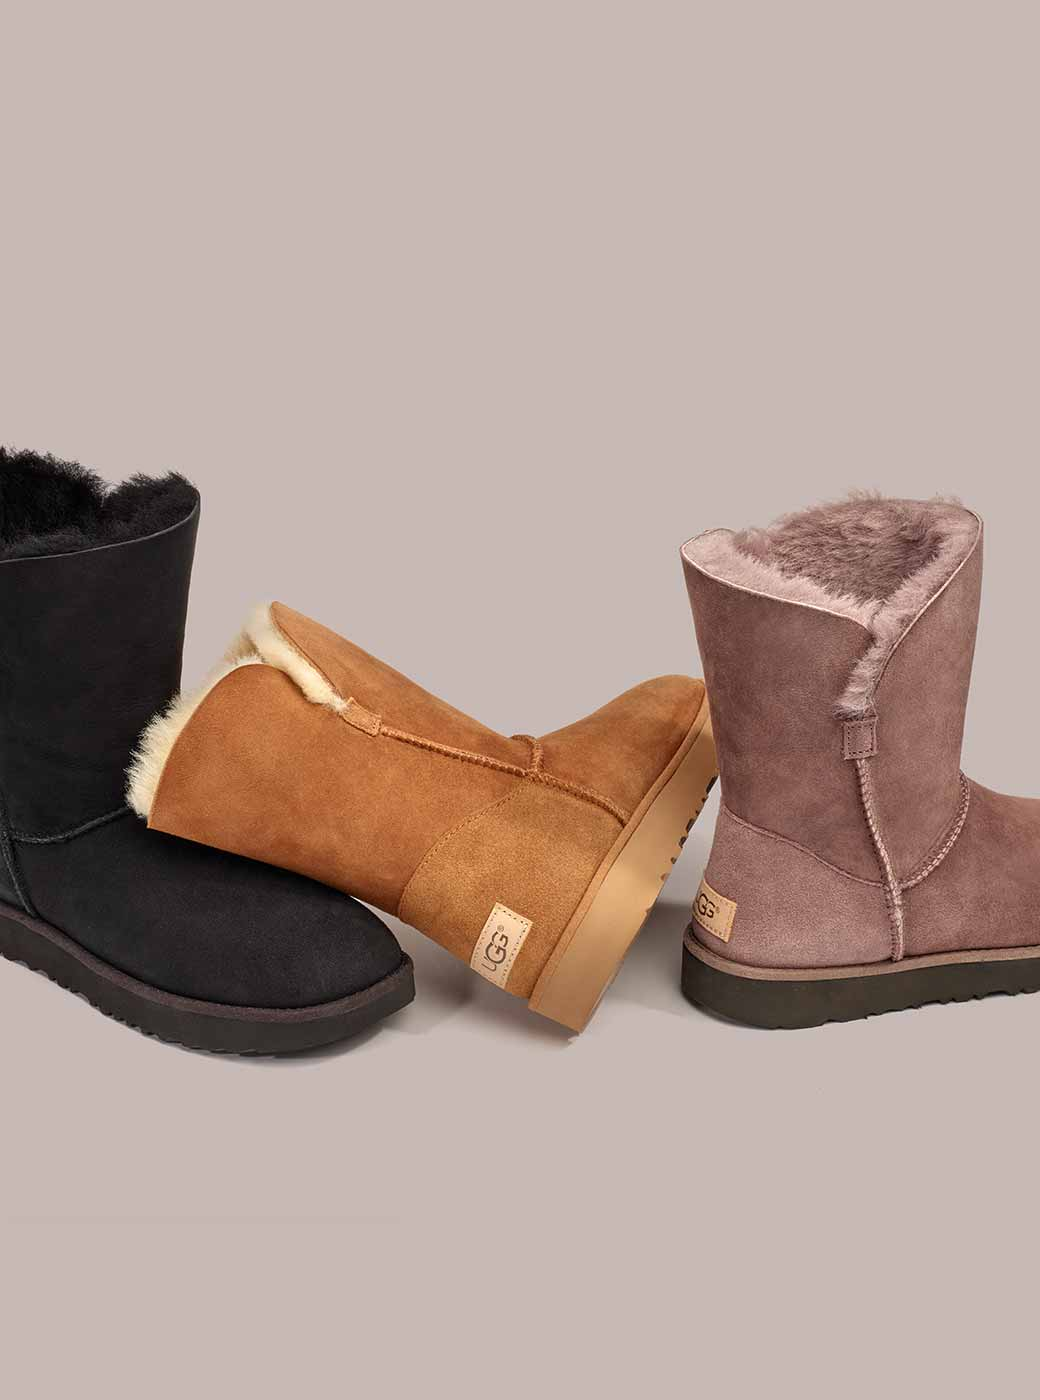 94517c5e495 Ugg closet sale up to 50% off - Slickdeals.net